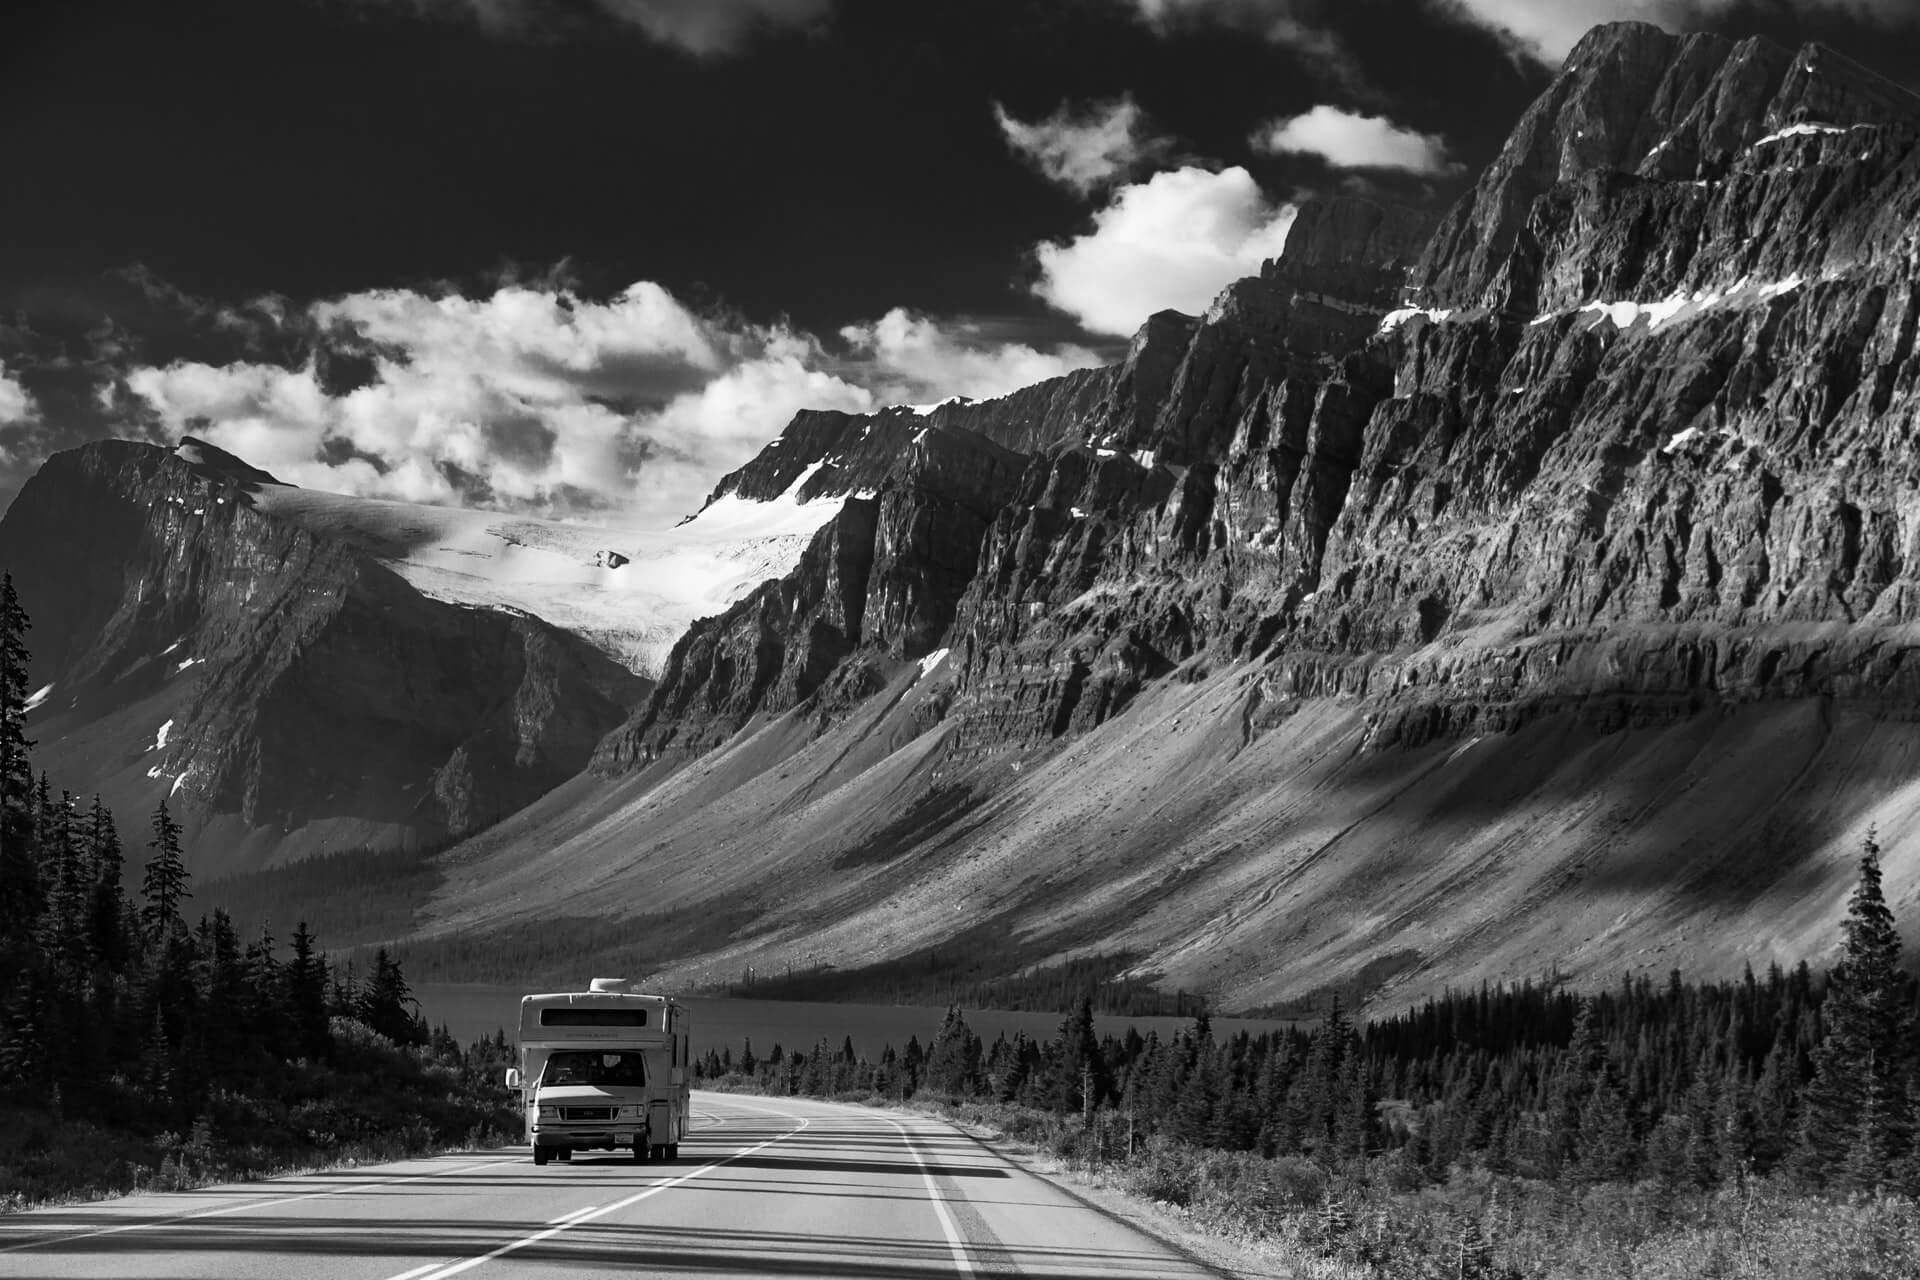 A rental RV on a planned road trip through the Canadian Rocky Mountains